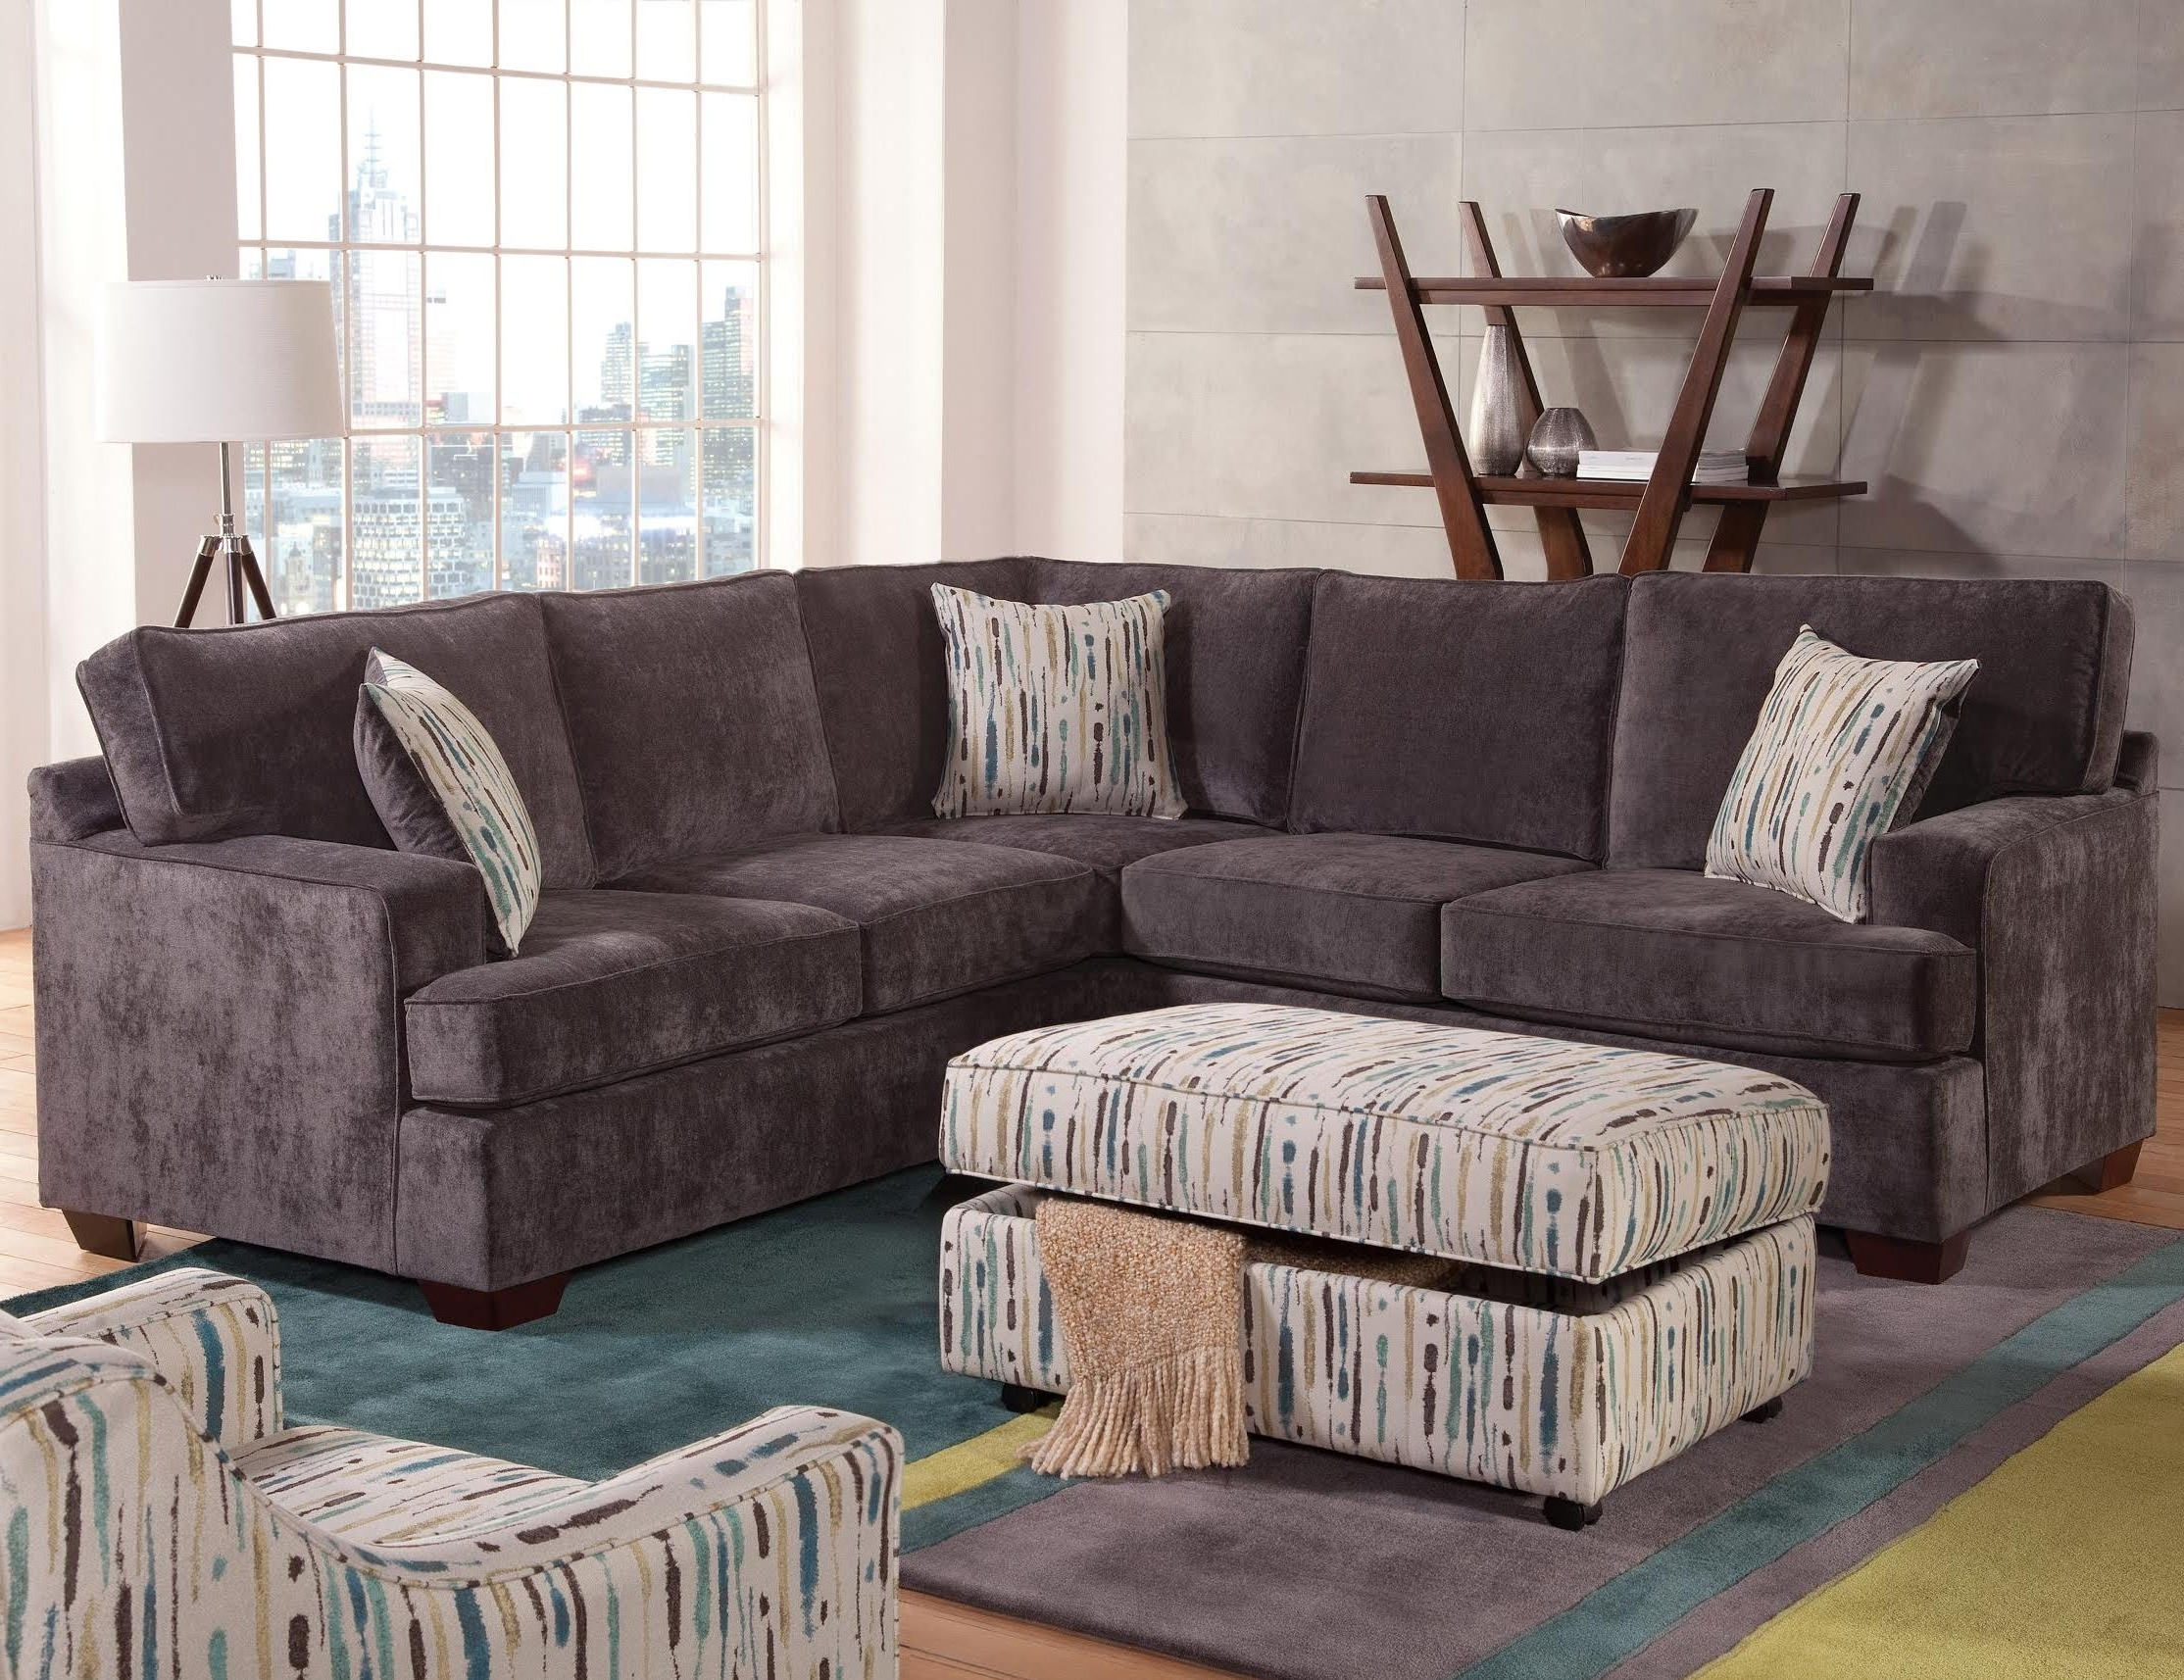 100X100 Sectional Sofas in Current Furniture : Zella Sectional Sofa Couch's Corner Berries Sectional